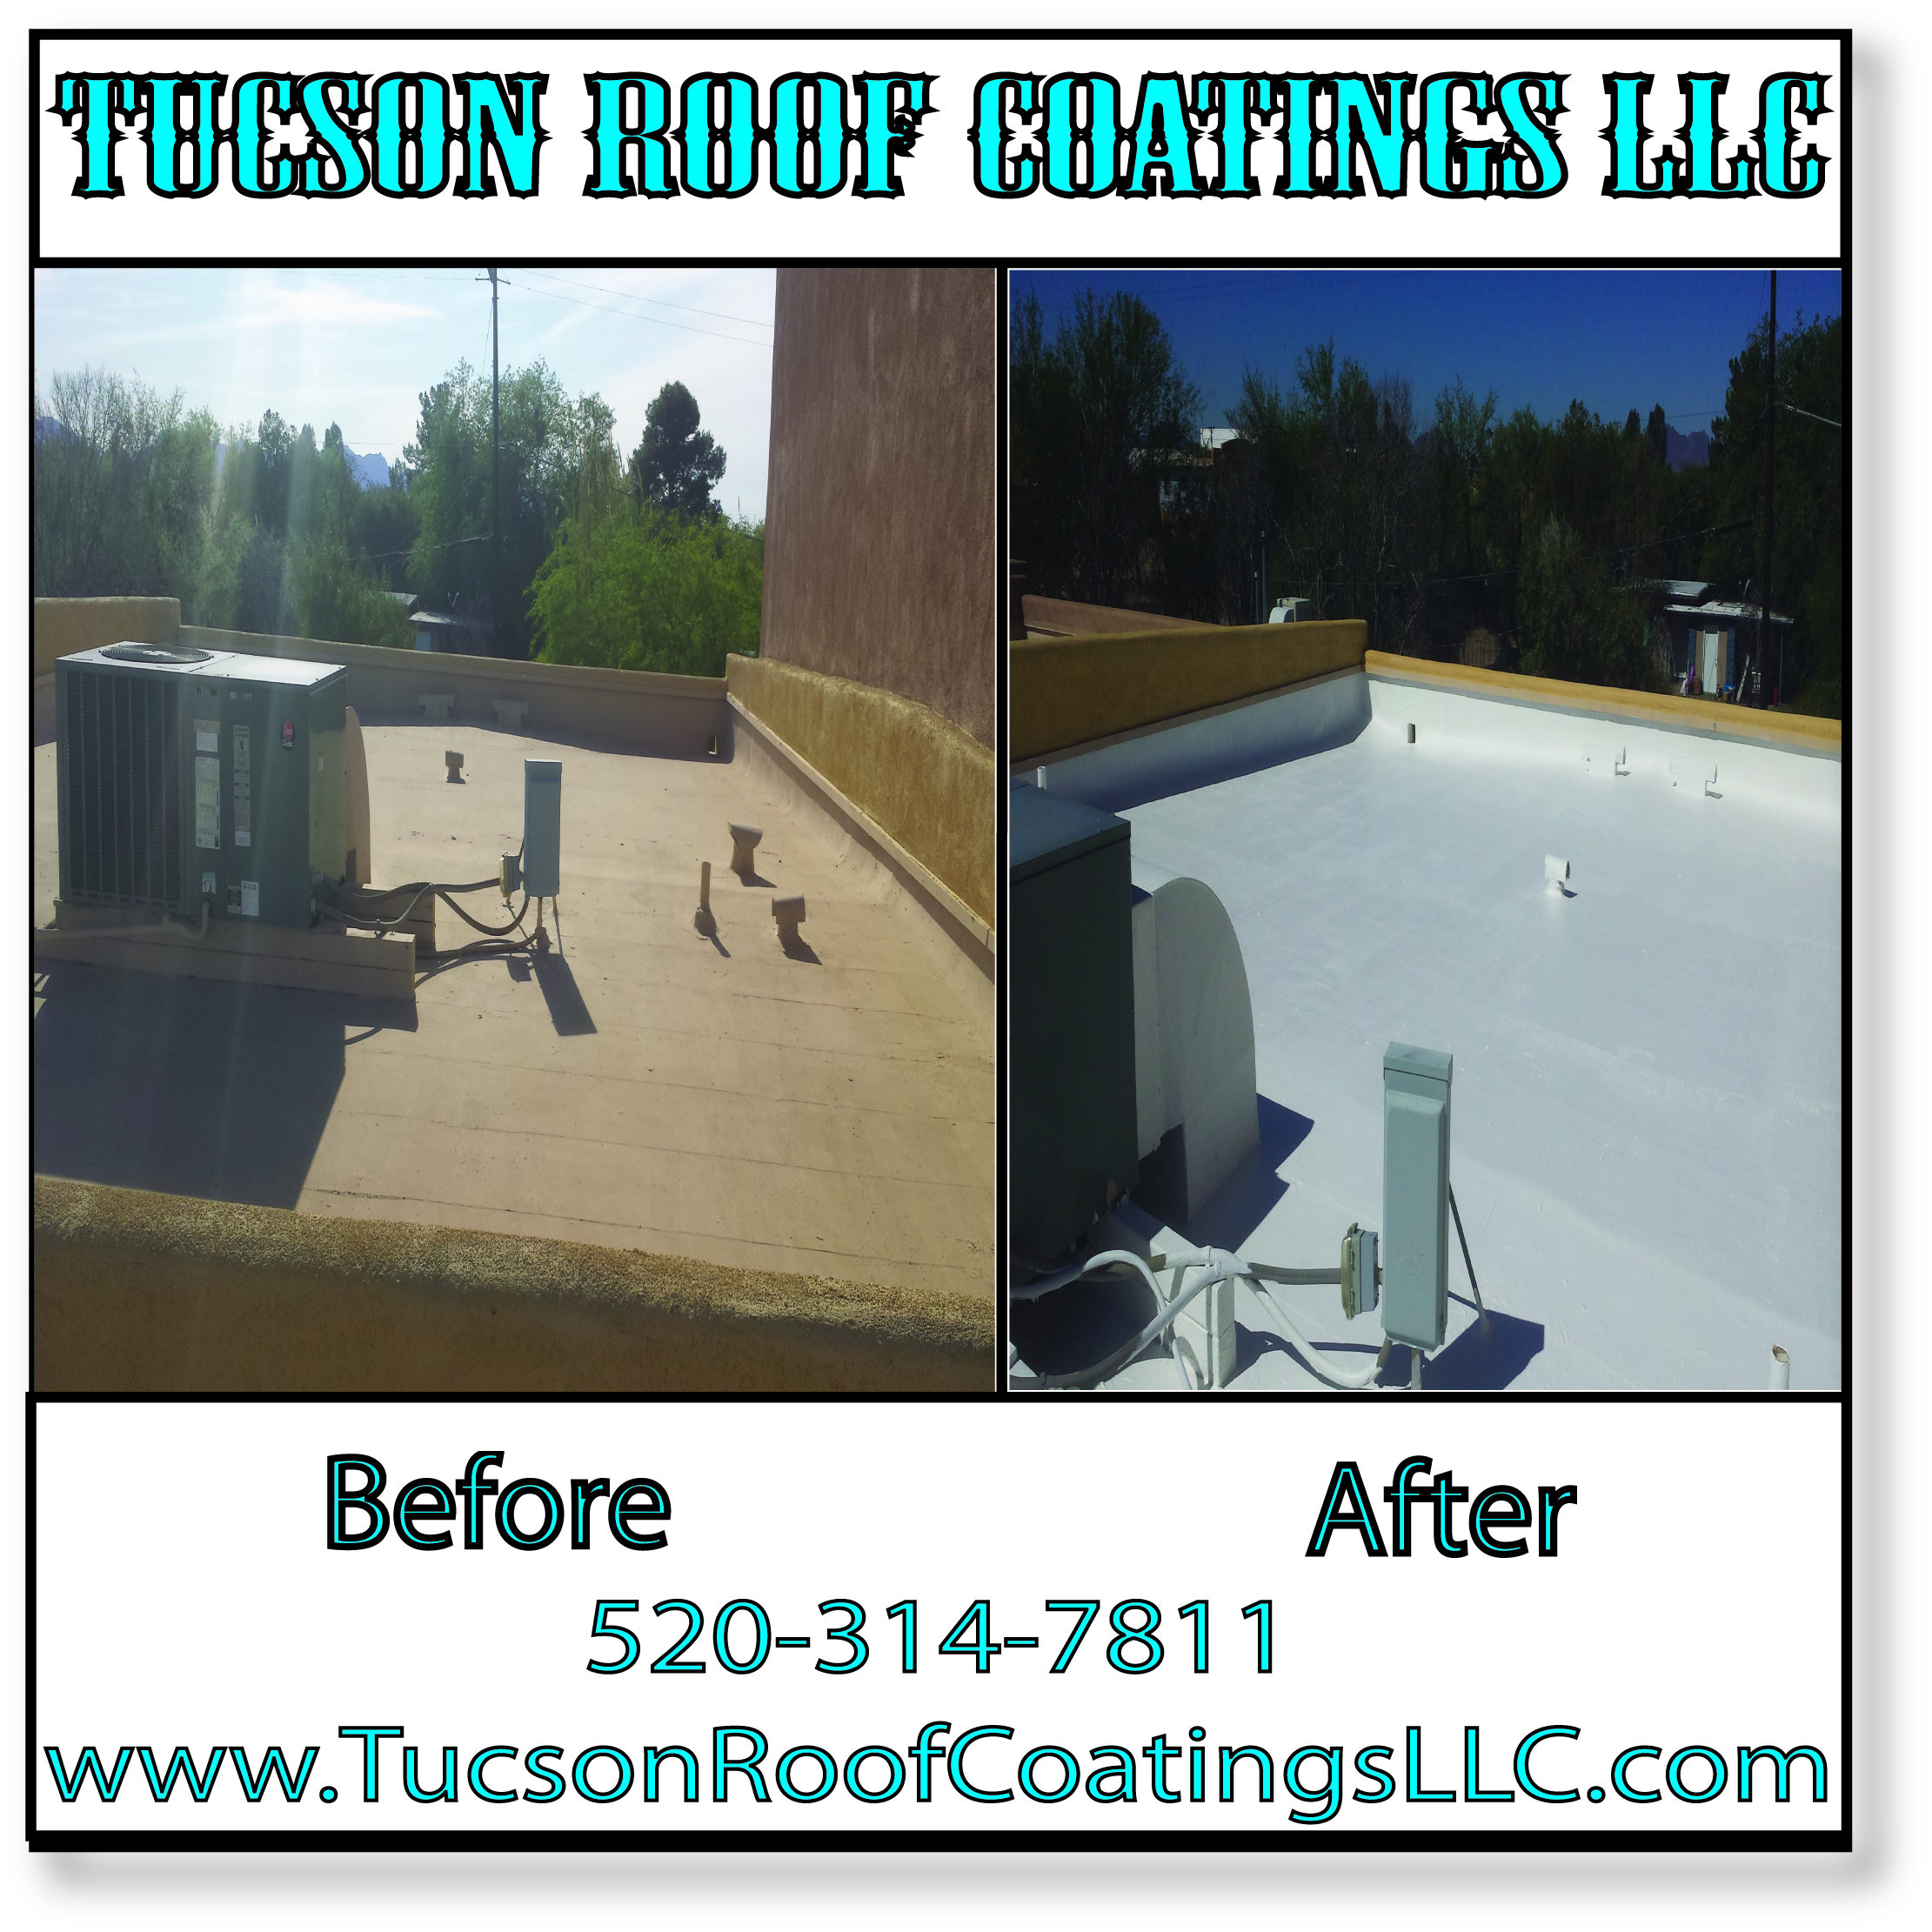 Before And After 4-14-2016 Tucson Roof Coatings LLC 1